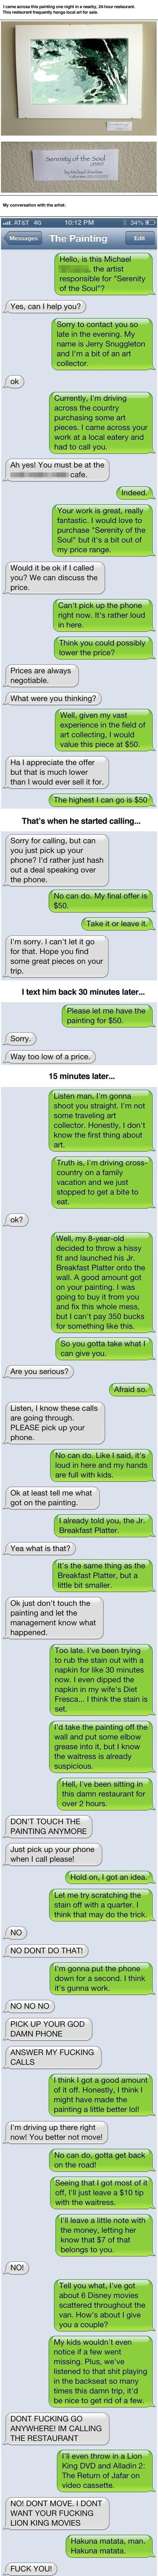 The Painting Prank